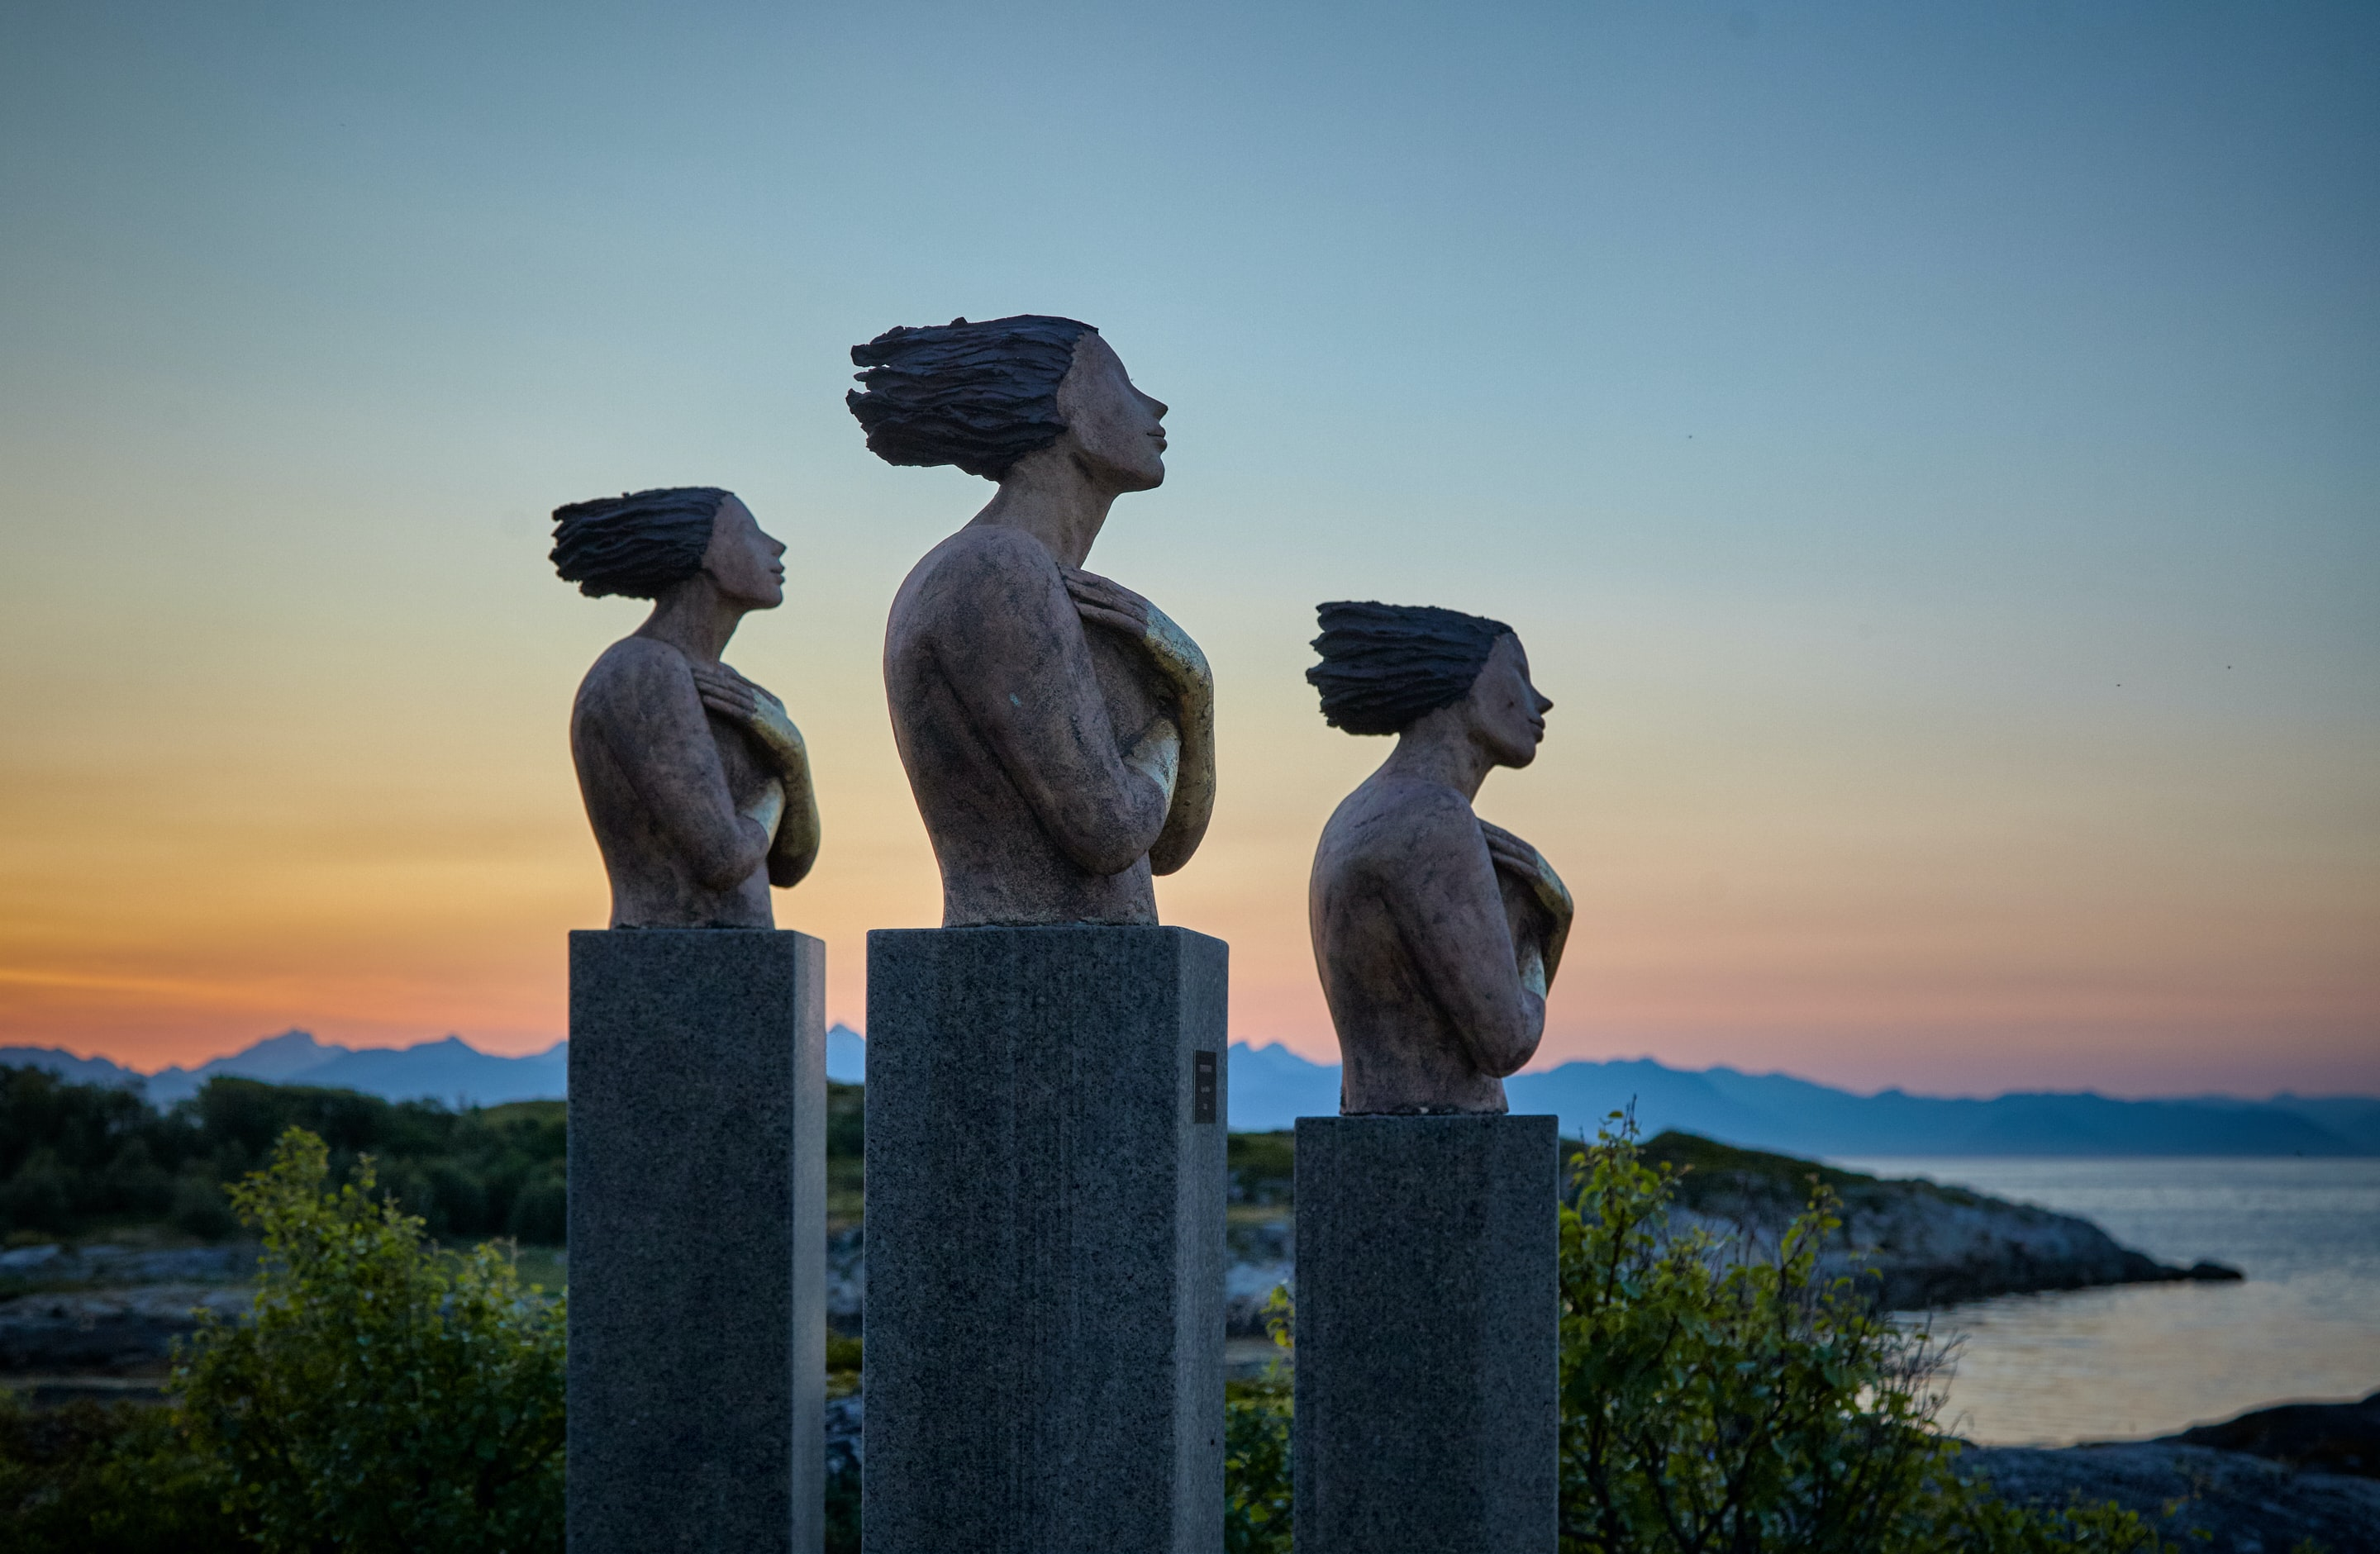 three concrete statues